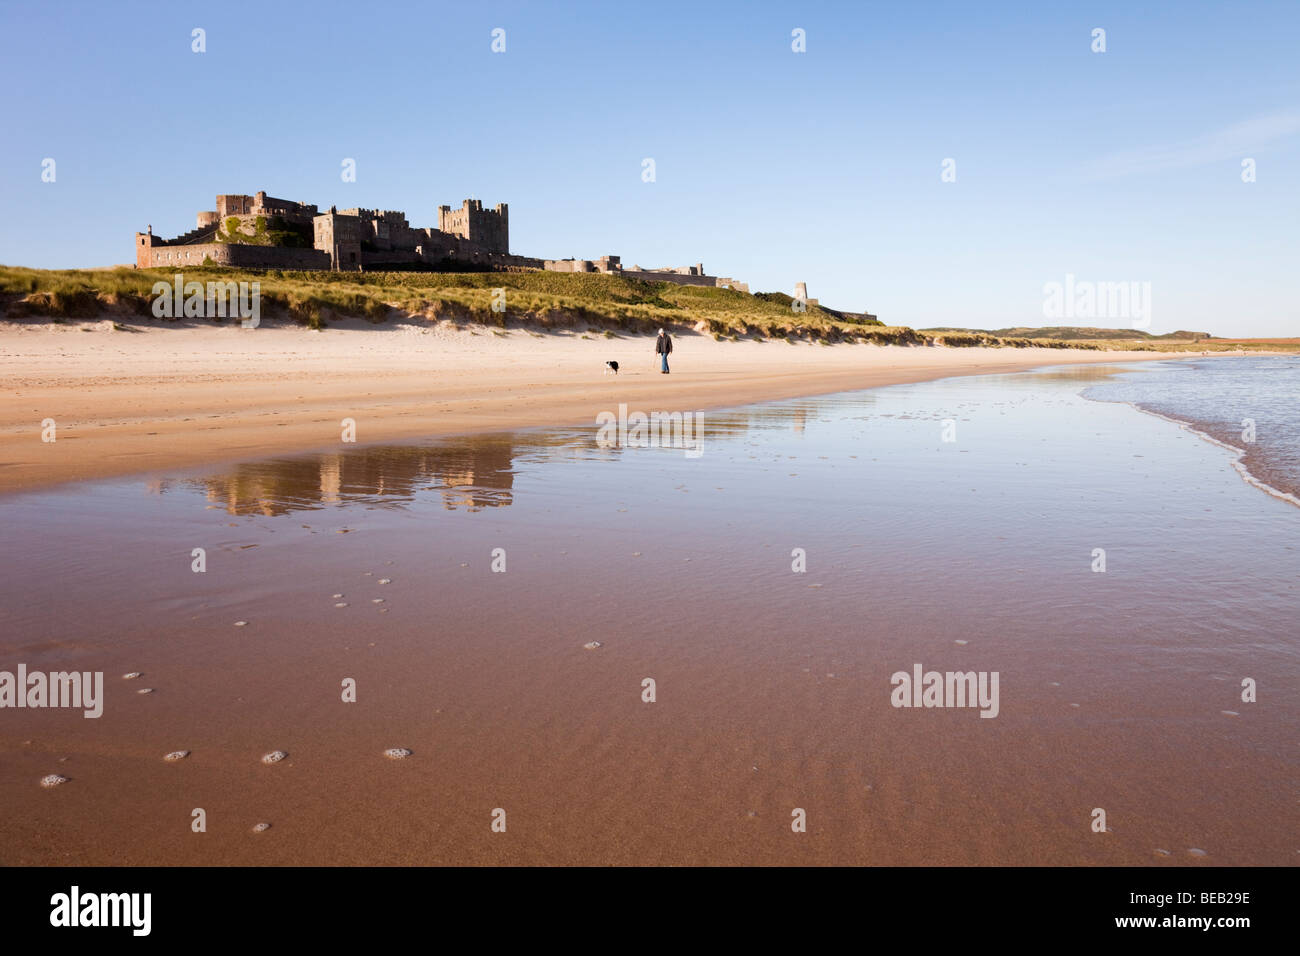 View along quiet sandy beach with Bamburgh Castle reflected in wet sand on foreshore with a person walking a dog. Stock Photo